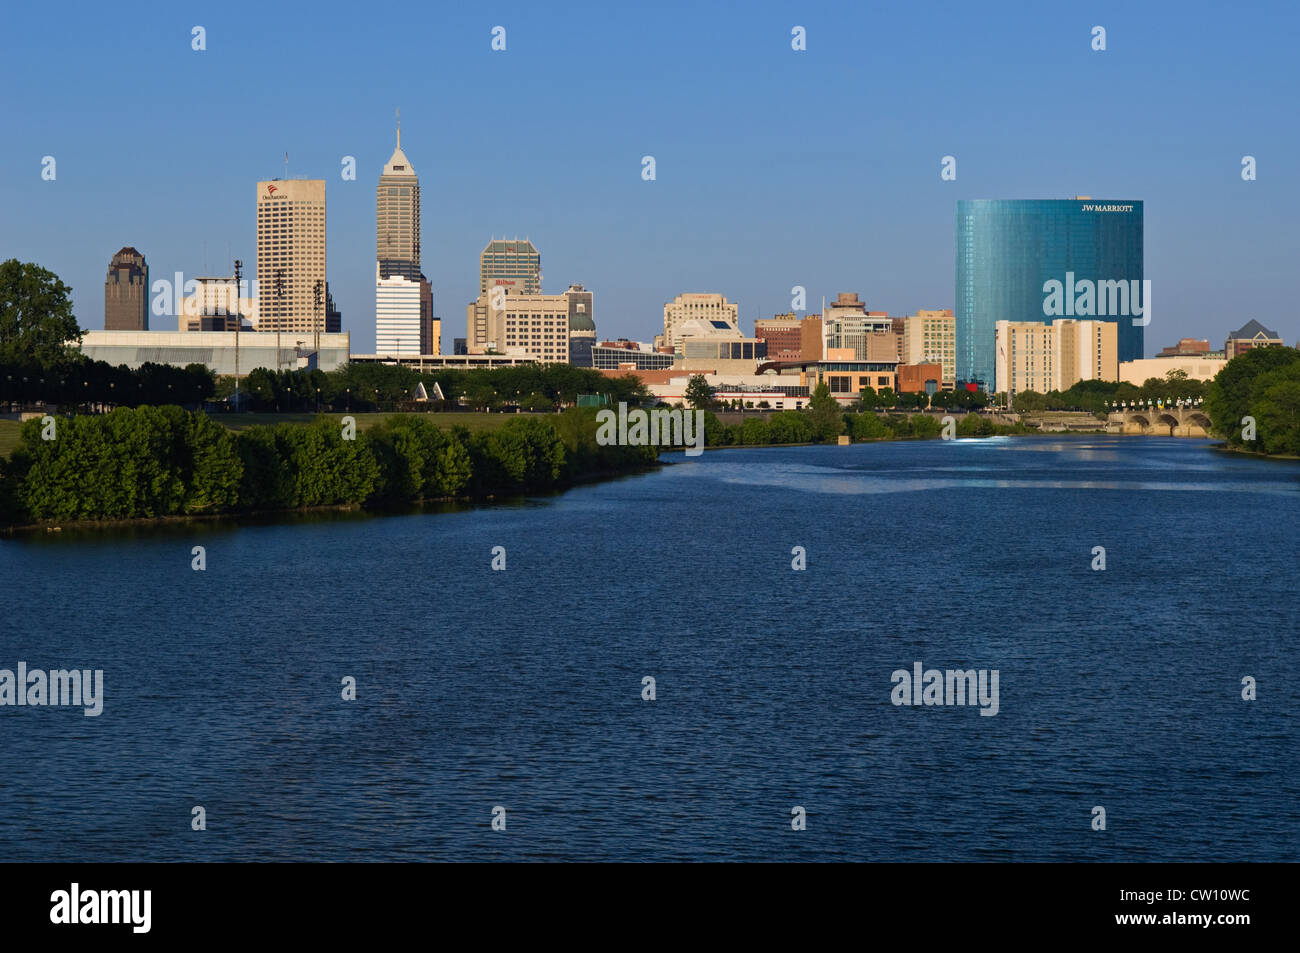 Indianapolis Indiana Skyline from White River State Park - Stock Image